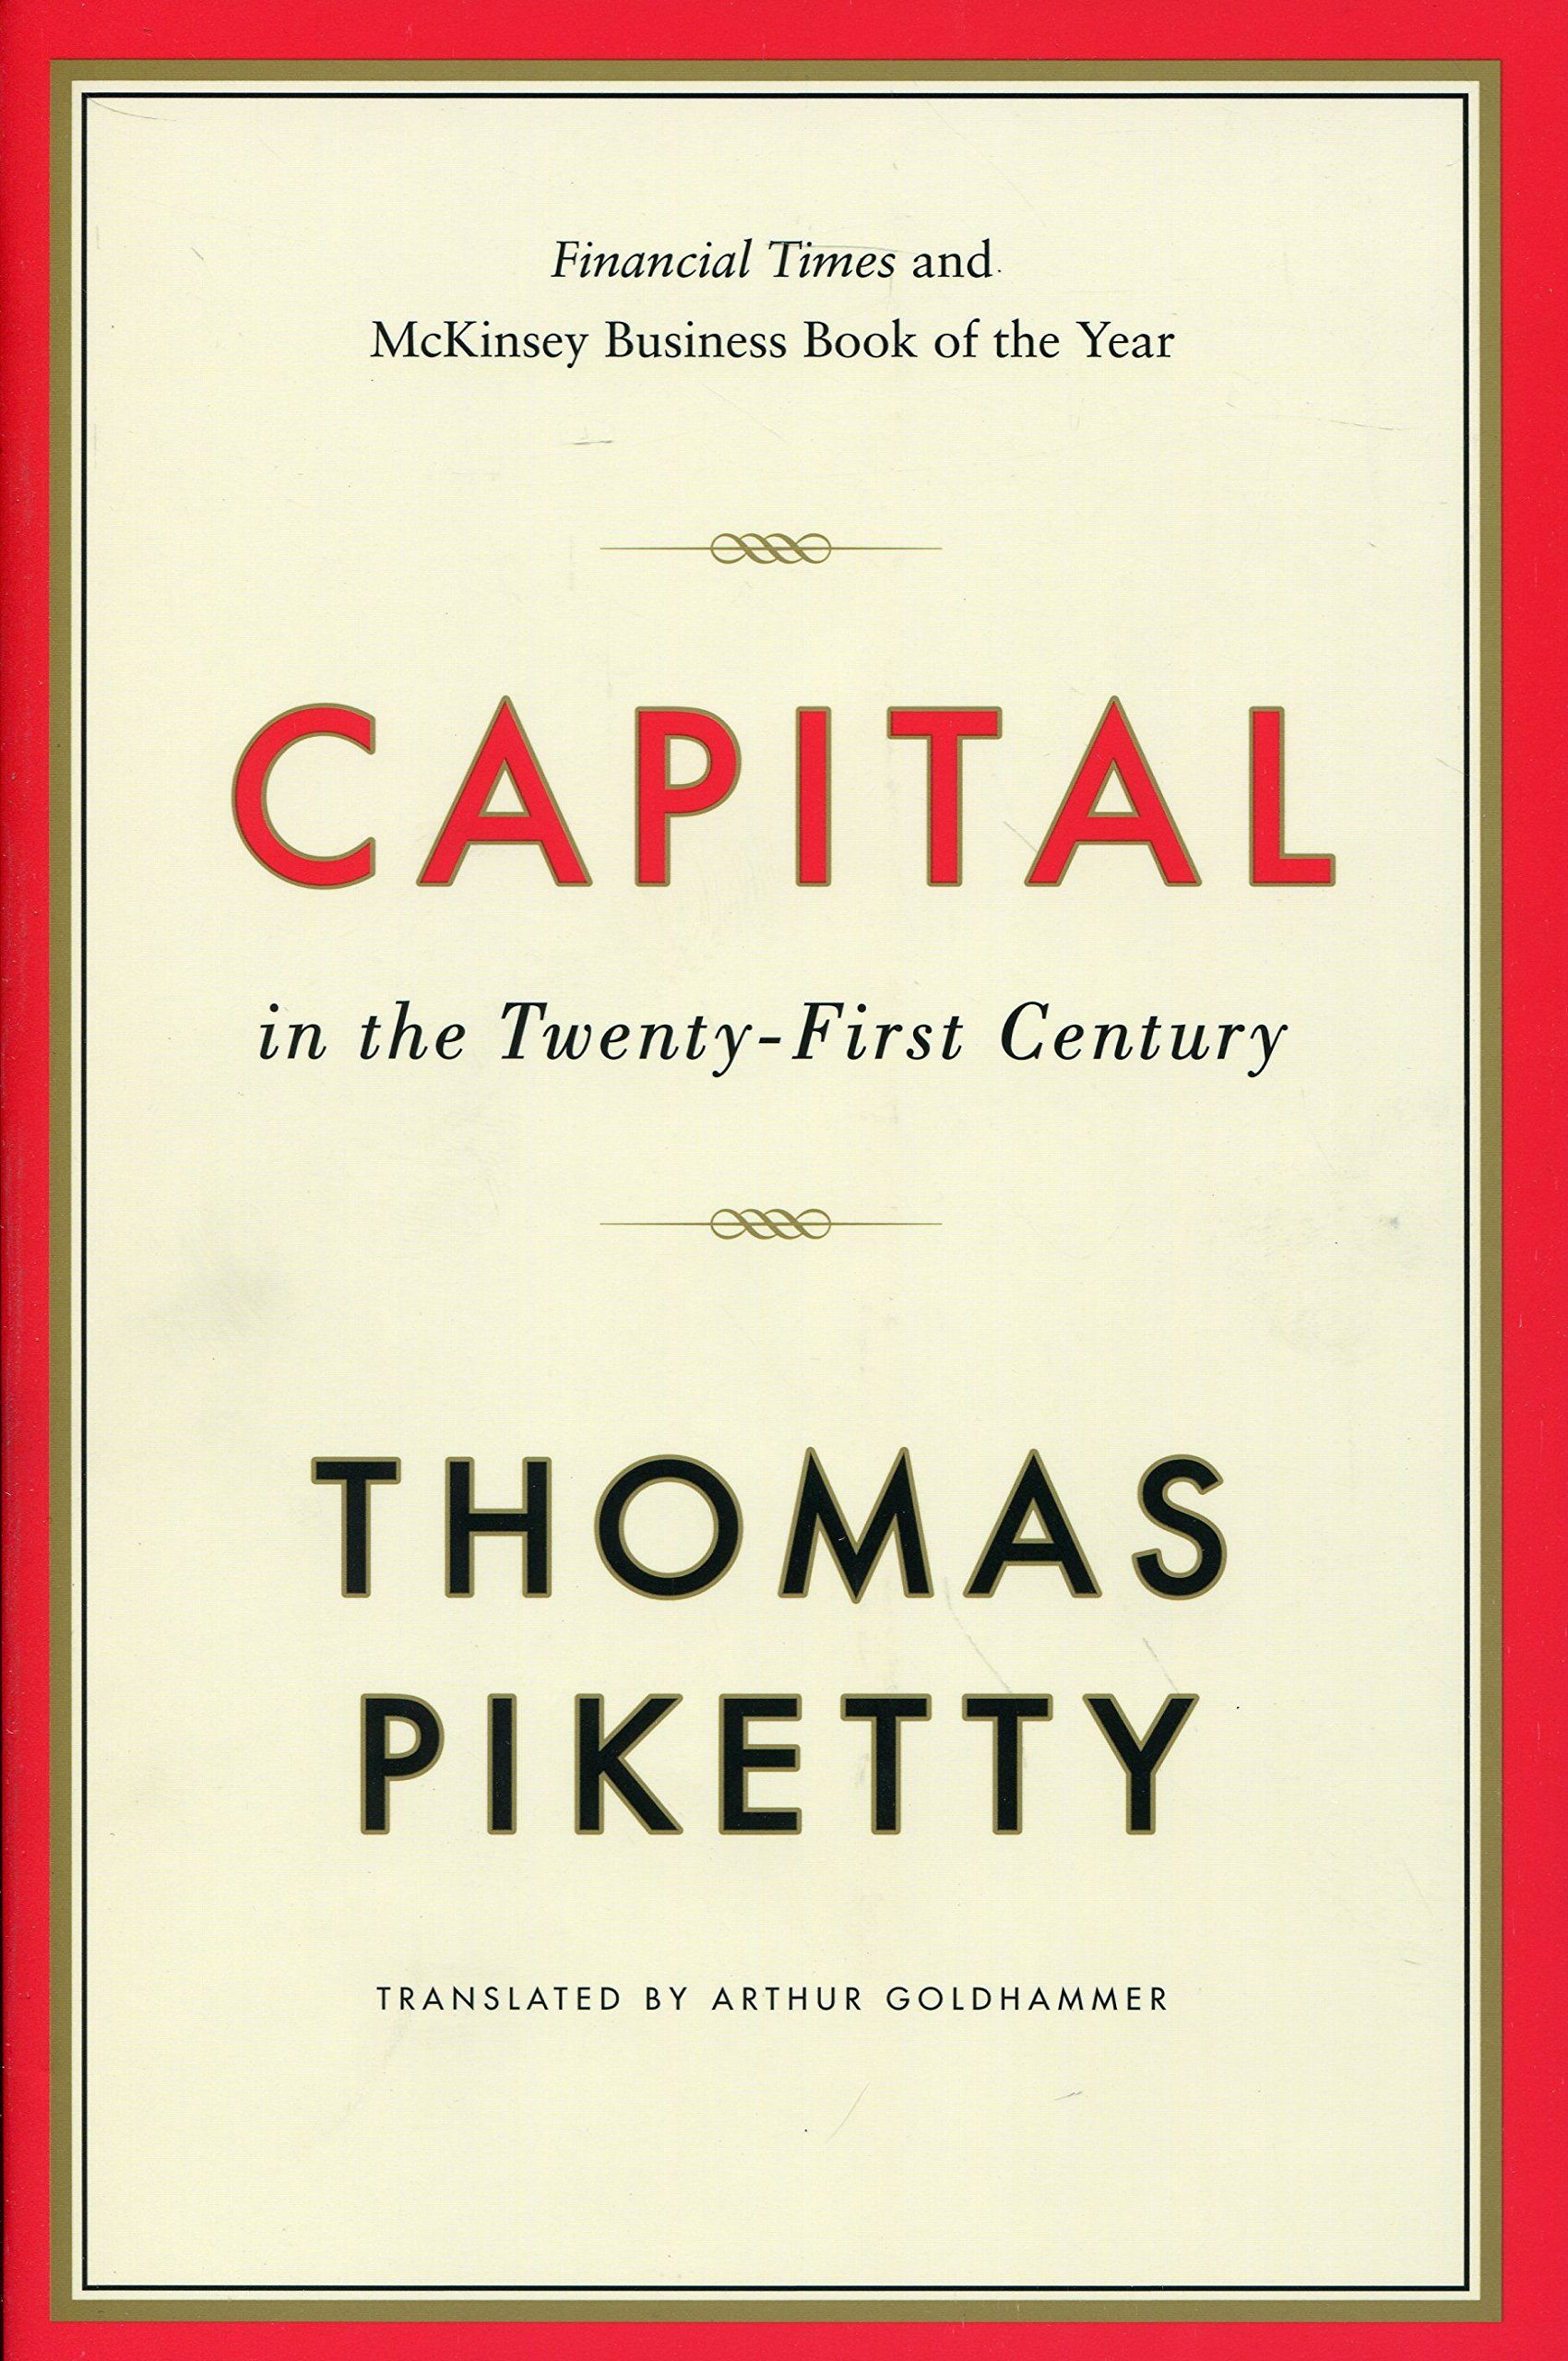 Buy Capital In The Twentyfirst Century Book Online At Low Prices In India   Capital In The Twentyfirst Century Reviews & Ratings  Amazon